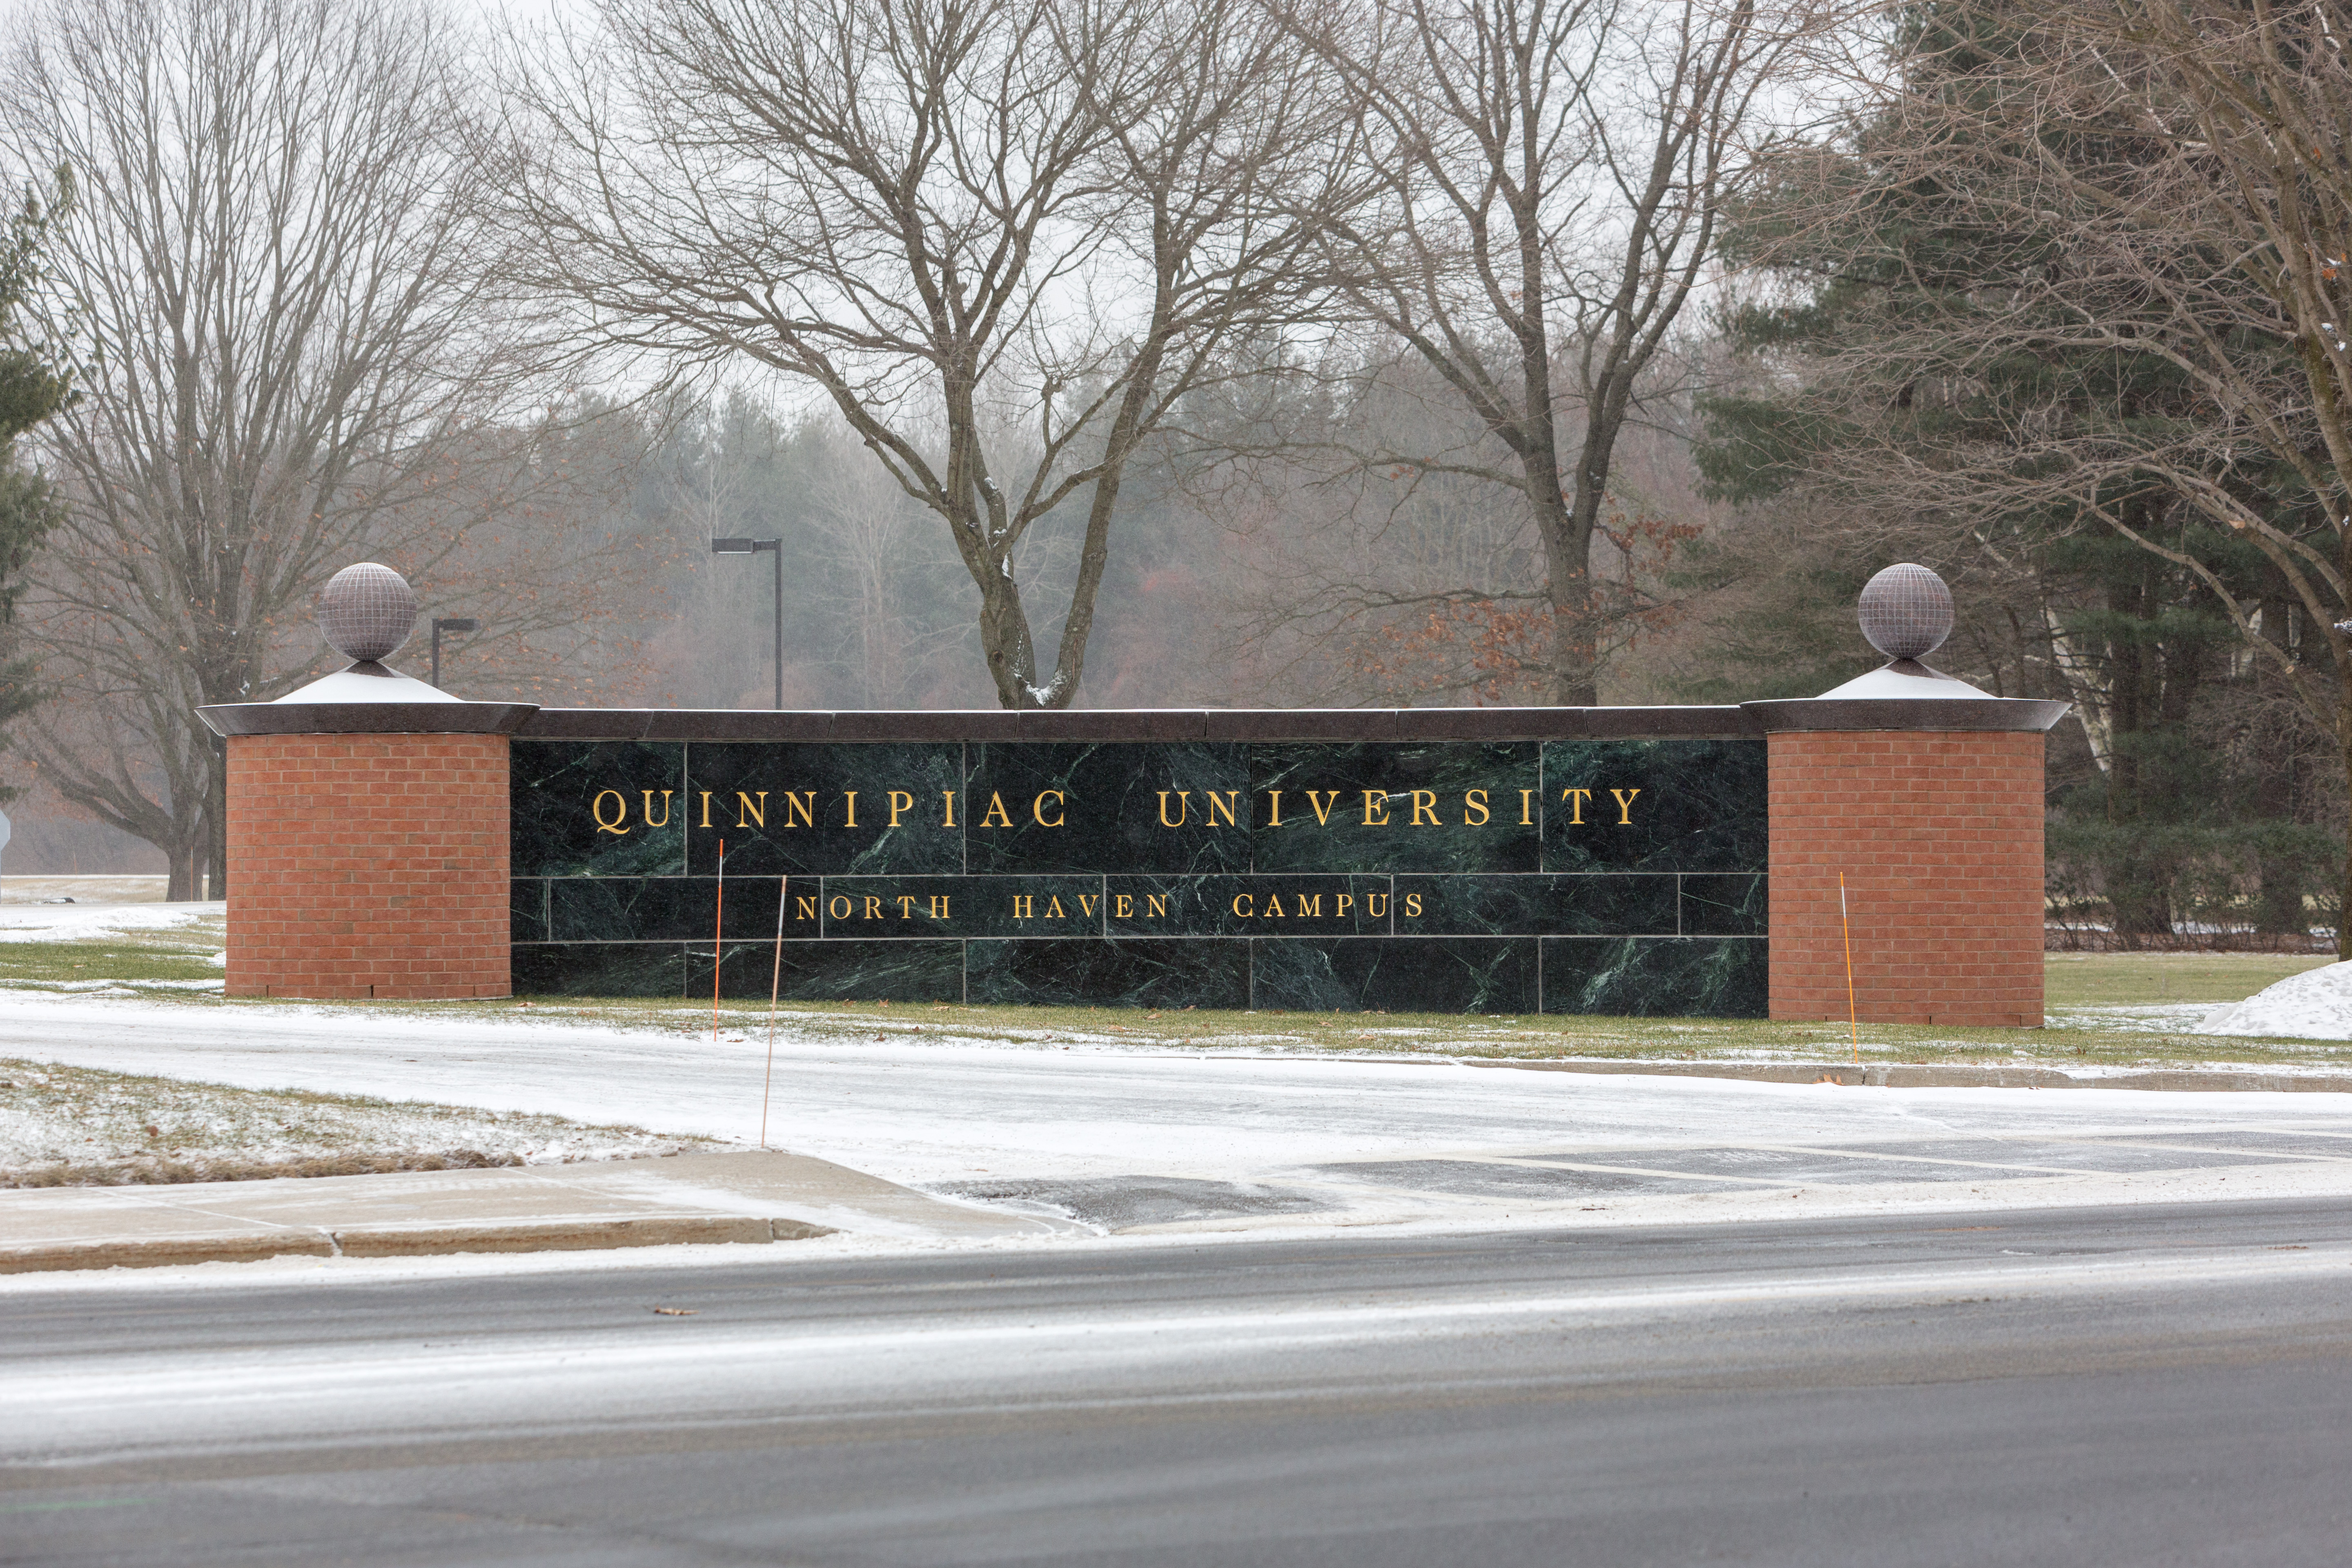 Quinnipiac University North Haven Campus sign 2014-01-02